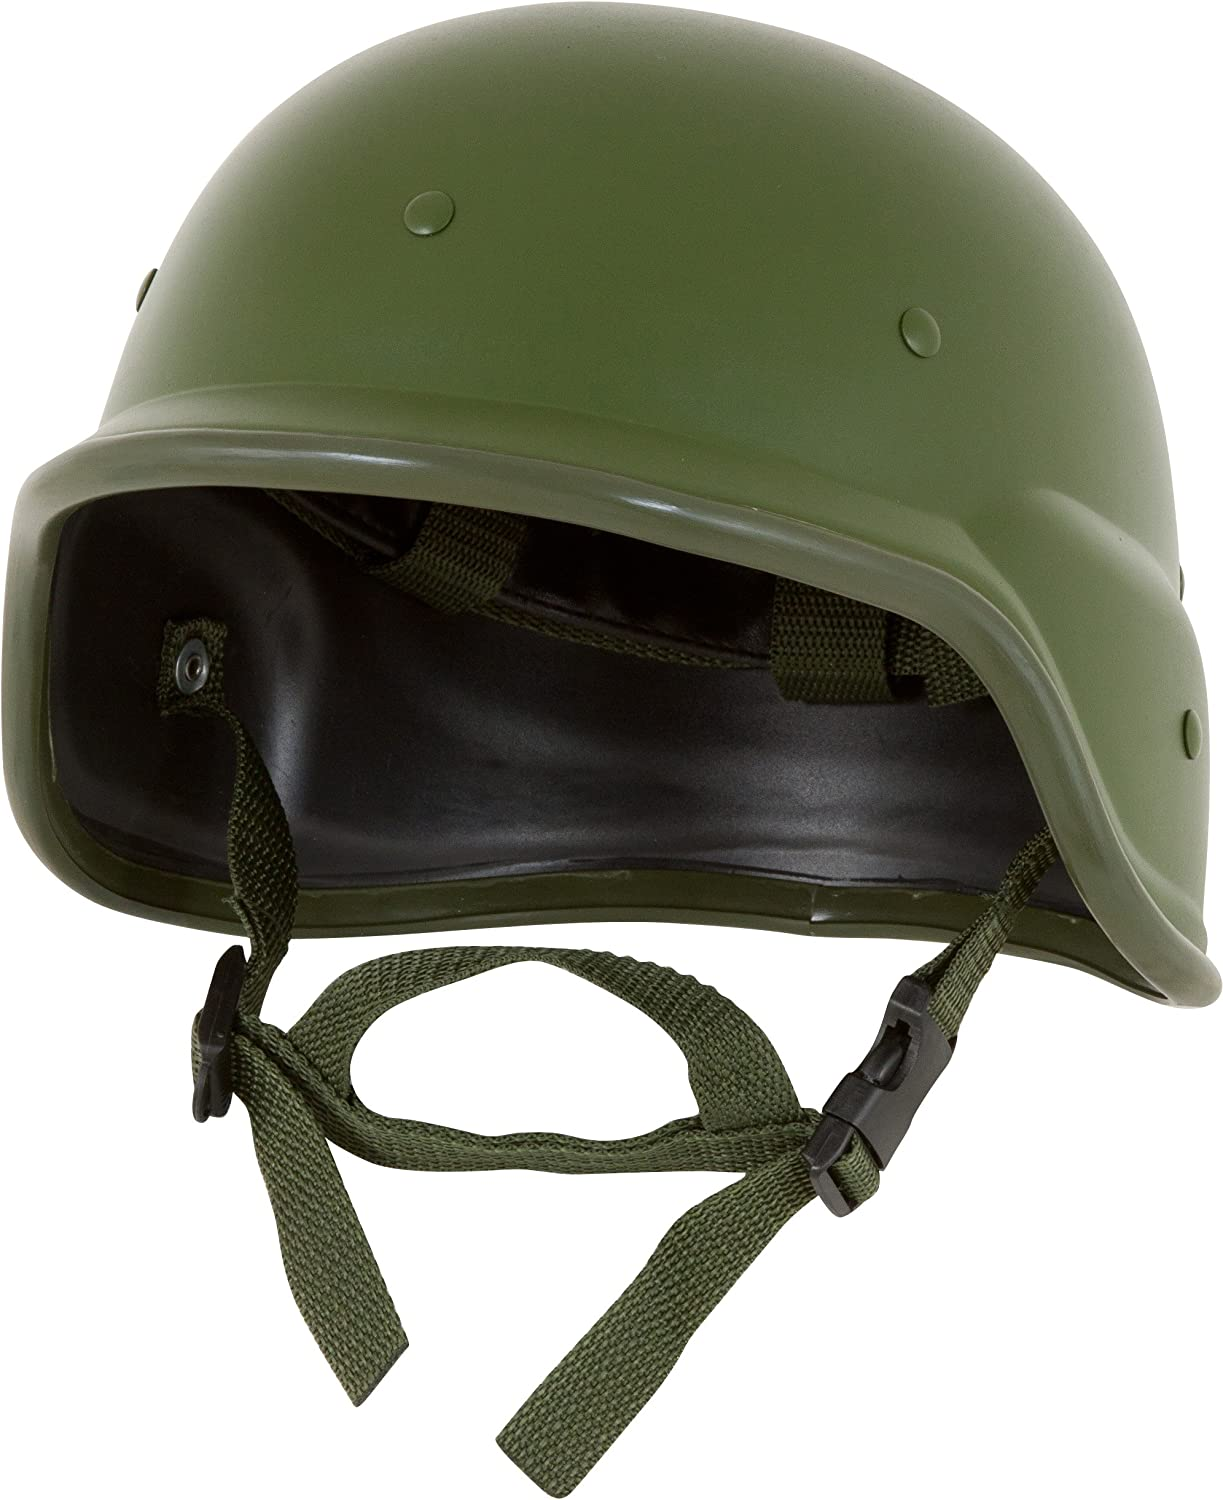 Image of the Modern Warrior Tactical M88 ABS Helmet in green color with Adjustable Chin Strap.